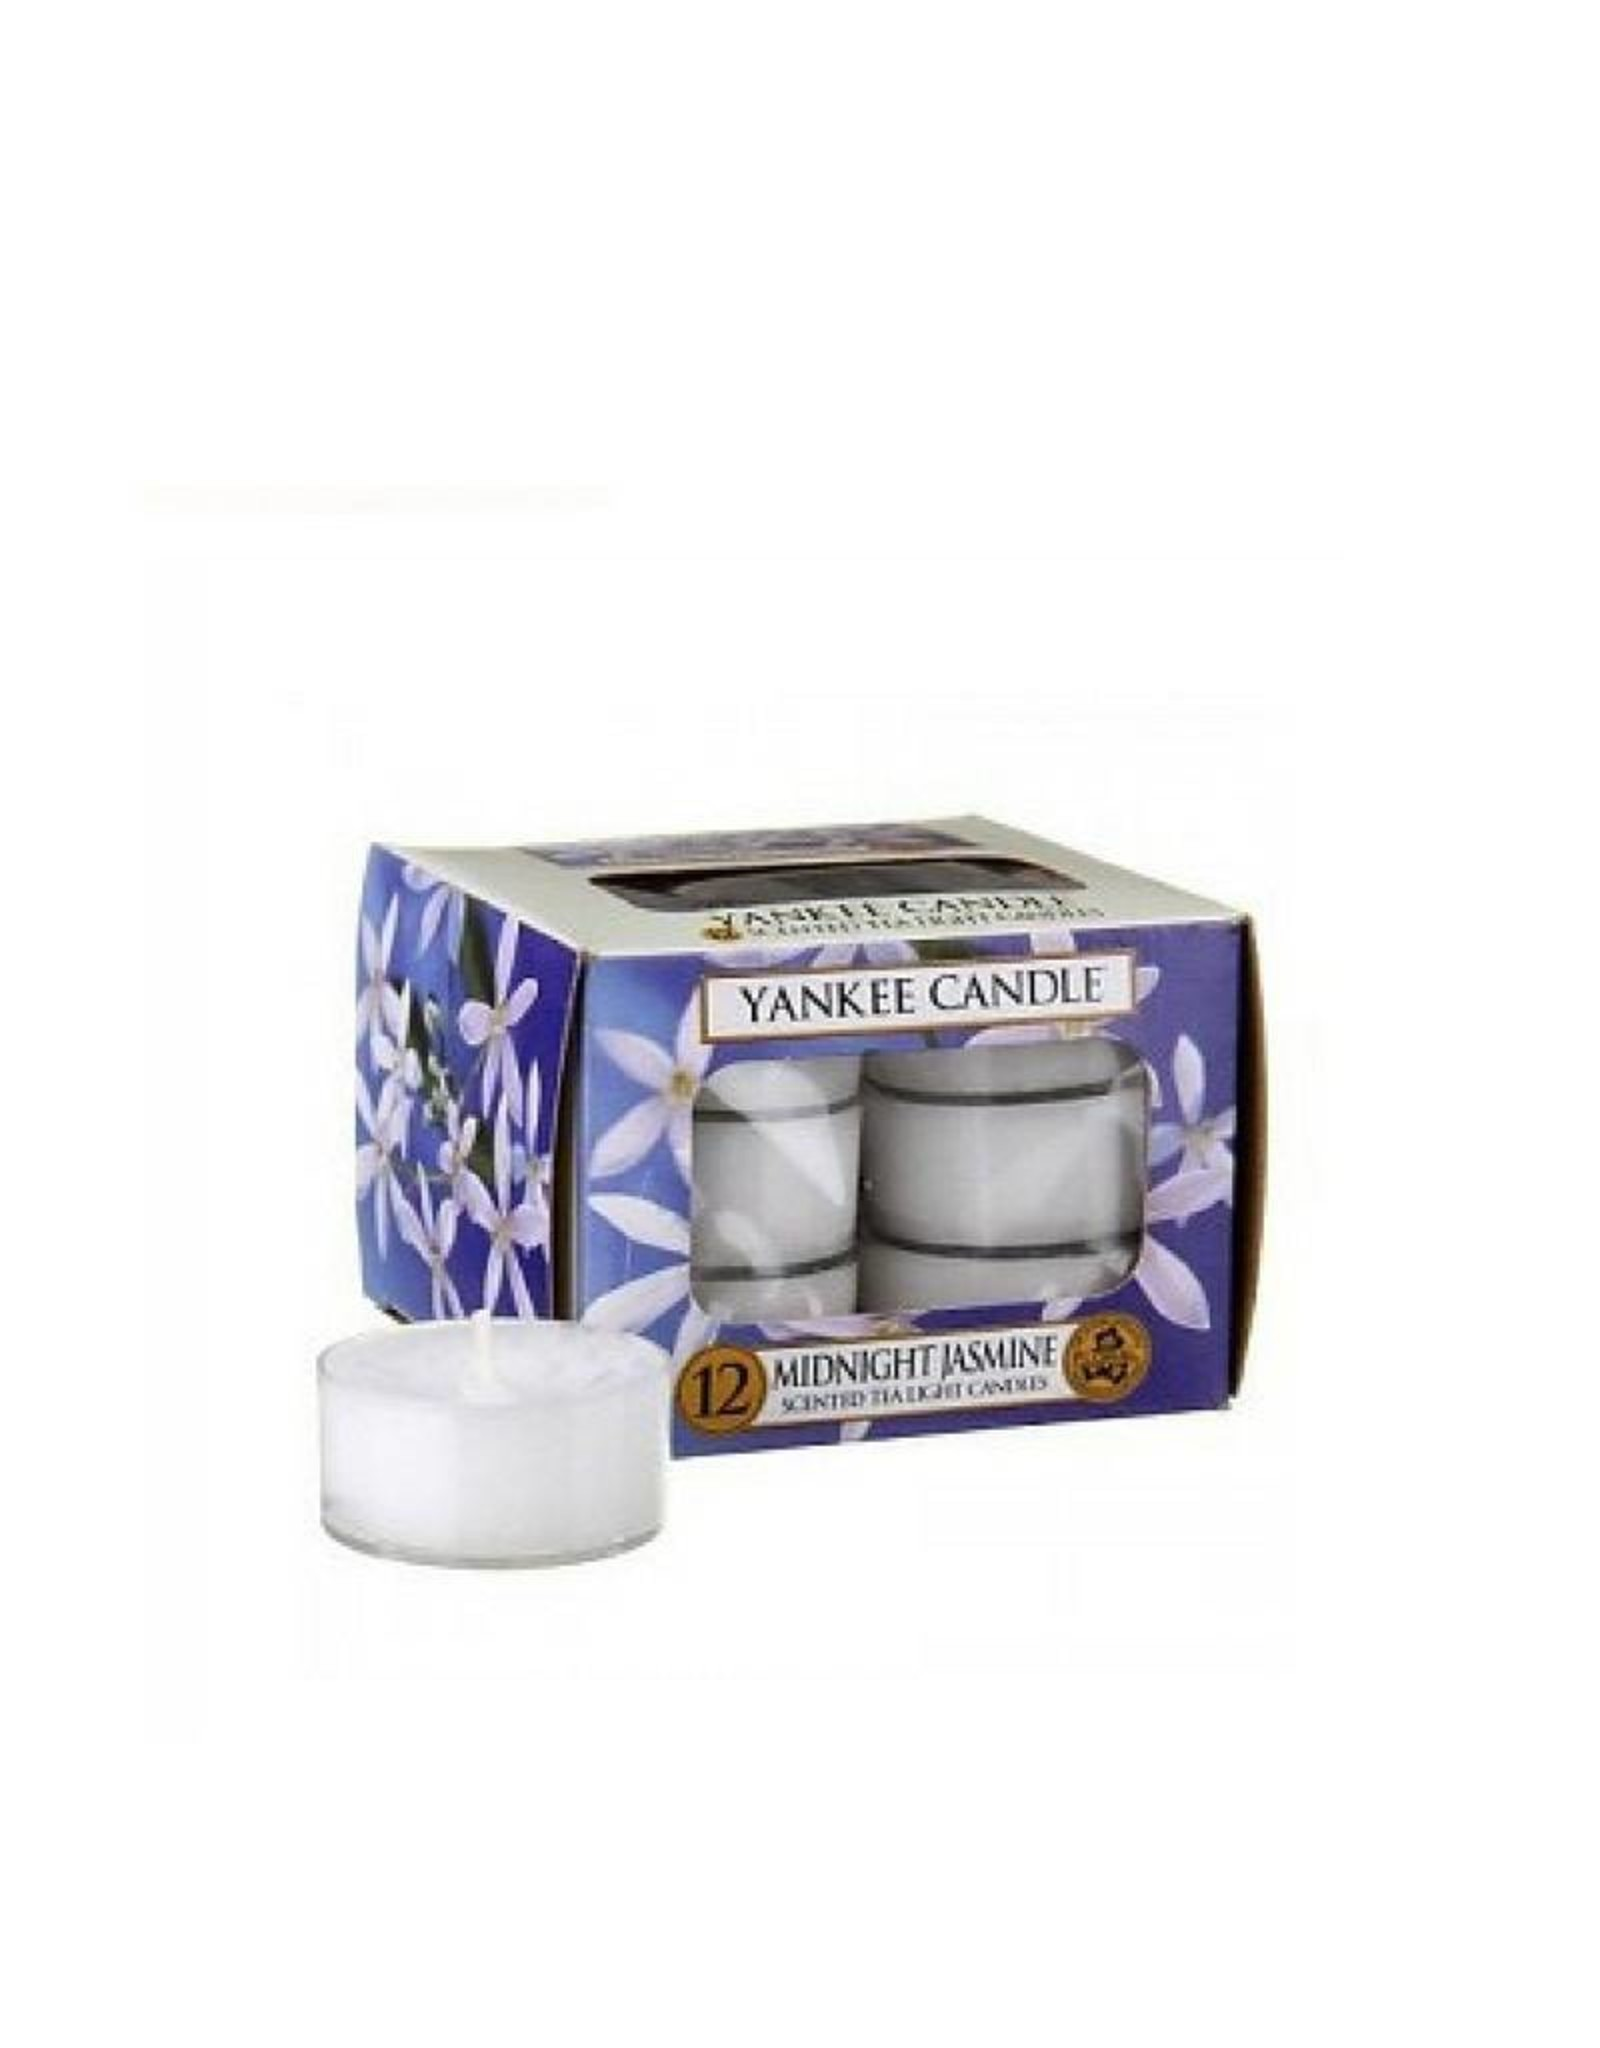 Yankee Candle Midnight Jasmine Tea Lights 12 st